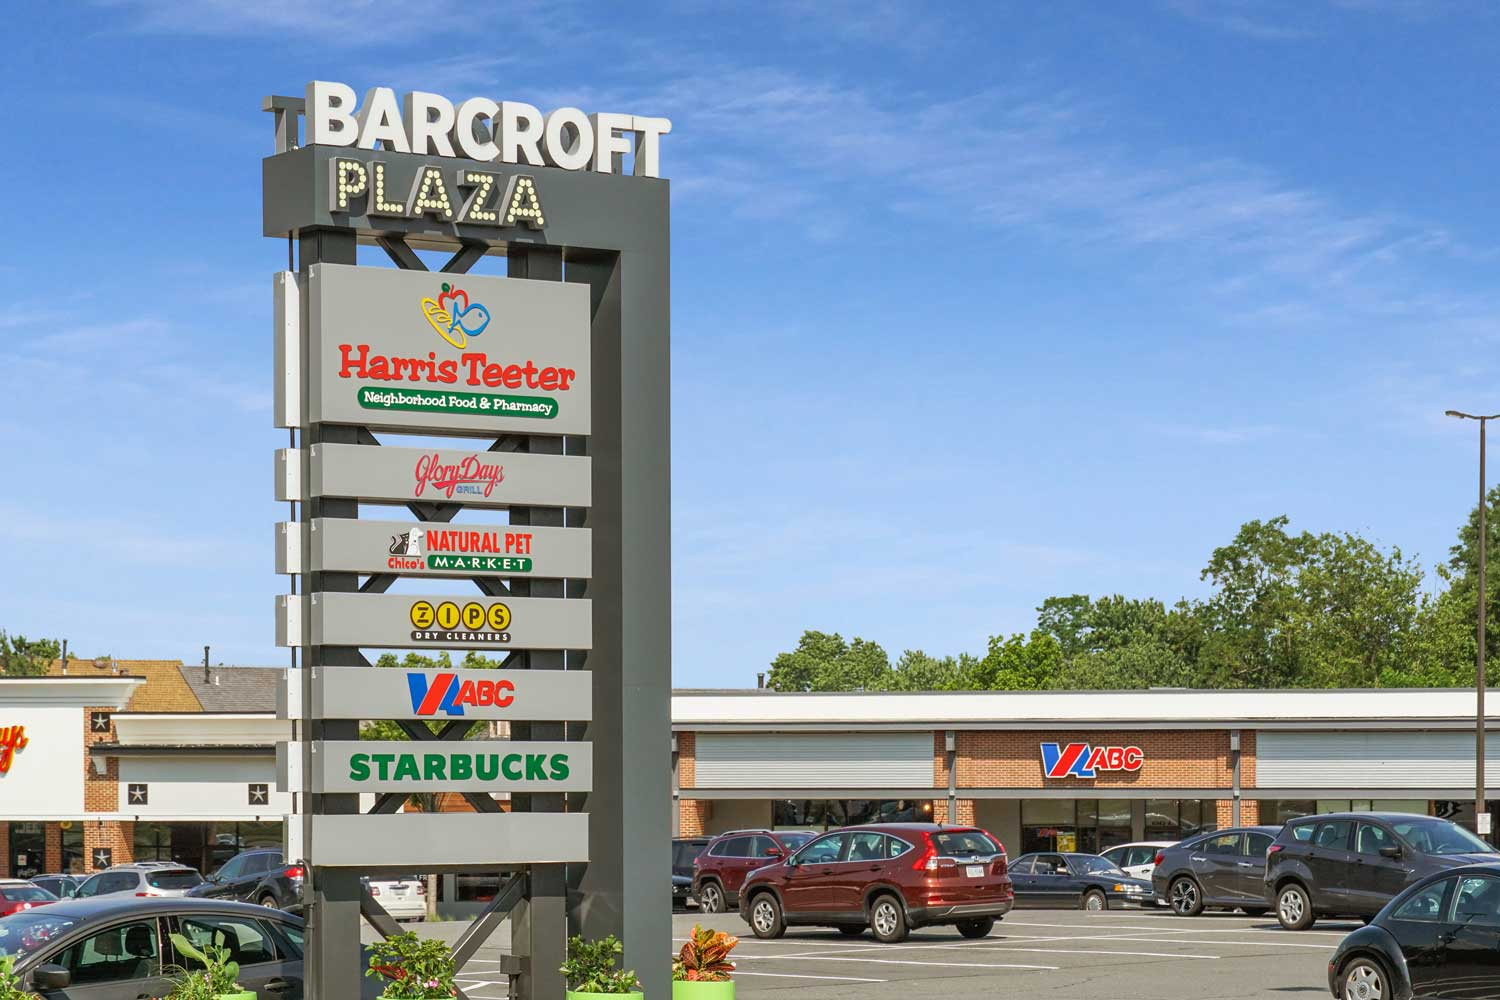 Barcroft Plaza shopping center is 5 Minutes from Barcroft View Apartments